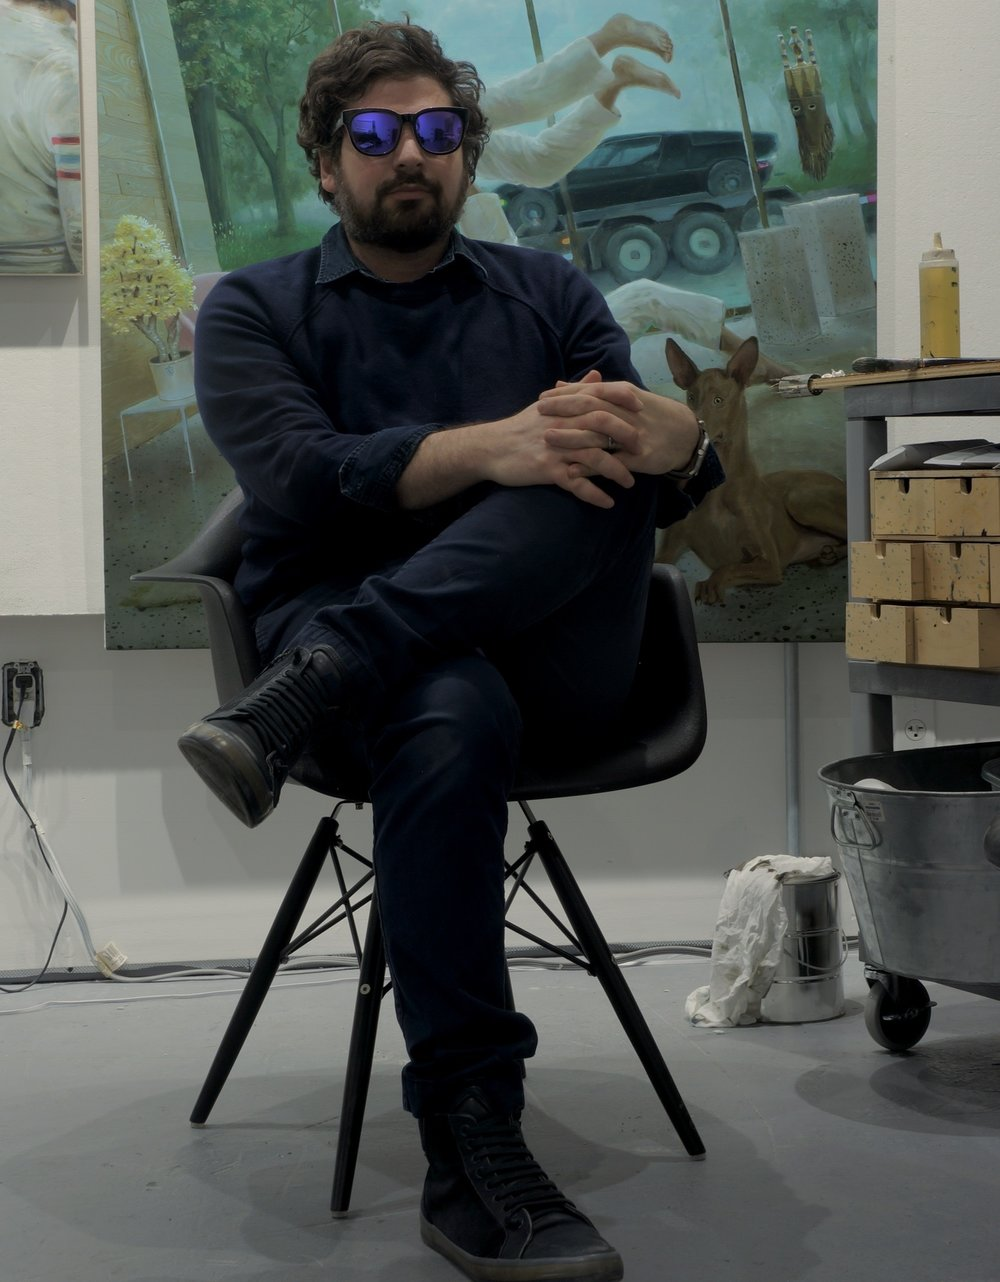 Viner in his studio. Winter, 2017/18